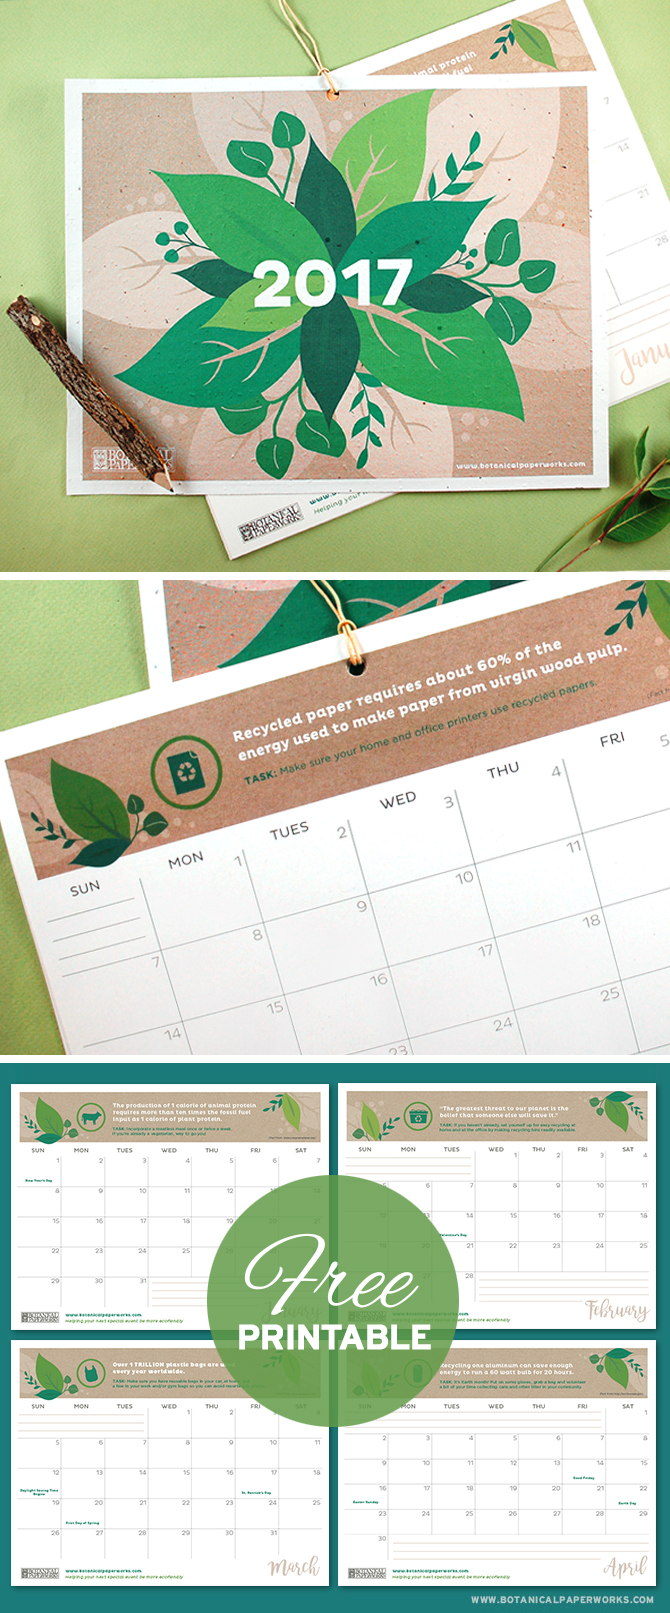 With facts, quotes and tips to help you live a more eco-friendly life, this vibrant Free Printable 2017 Eco Tips Calendar is perfect for those who want to plan a greener future. Simply download and print the PDF at home!